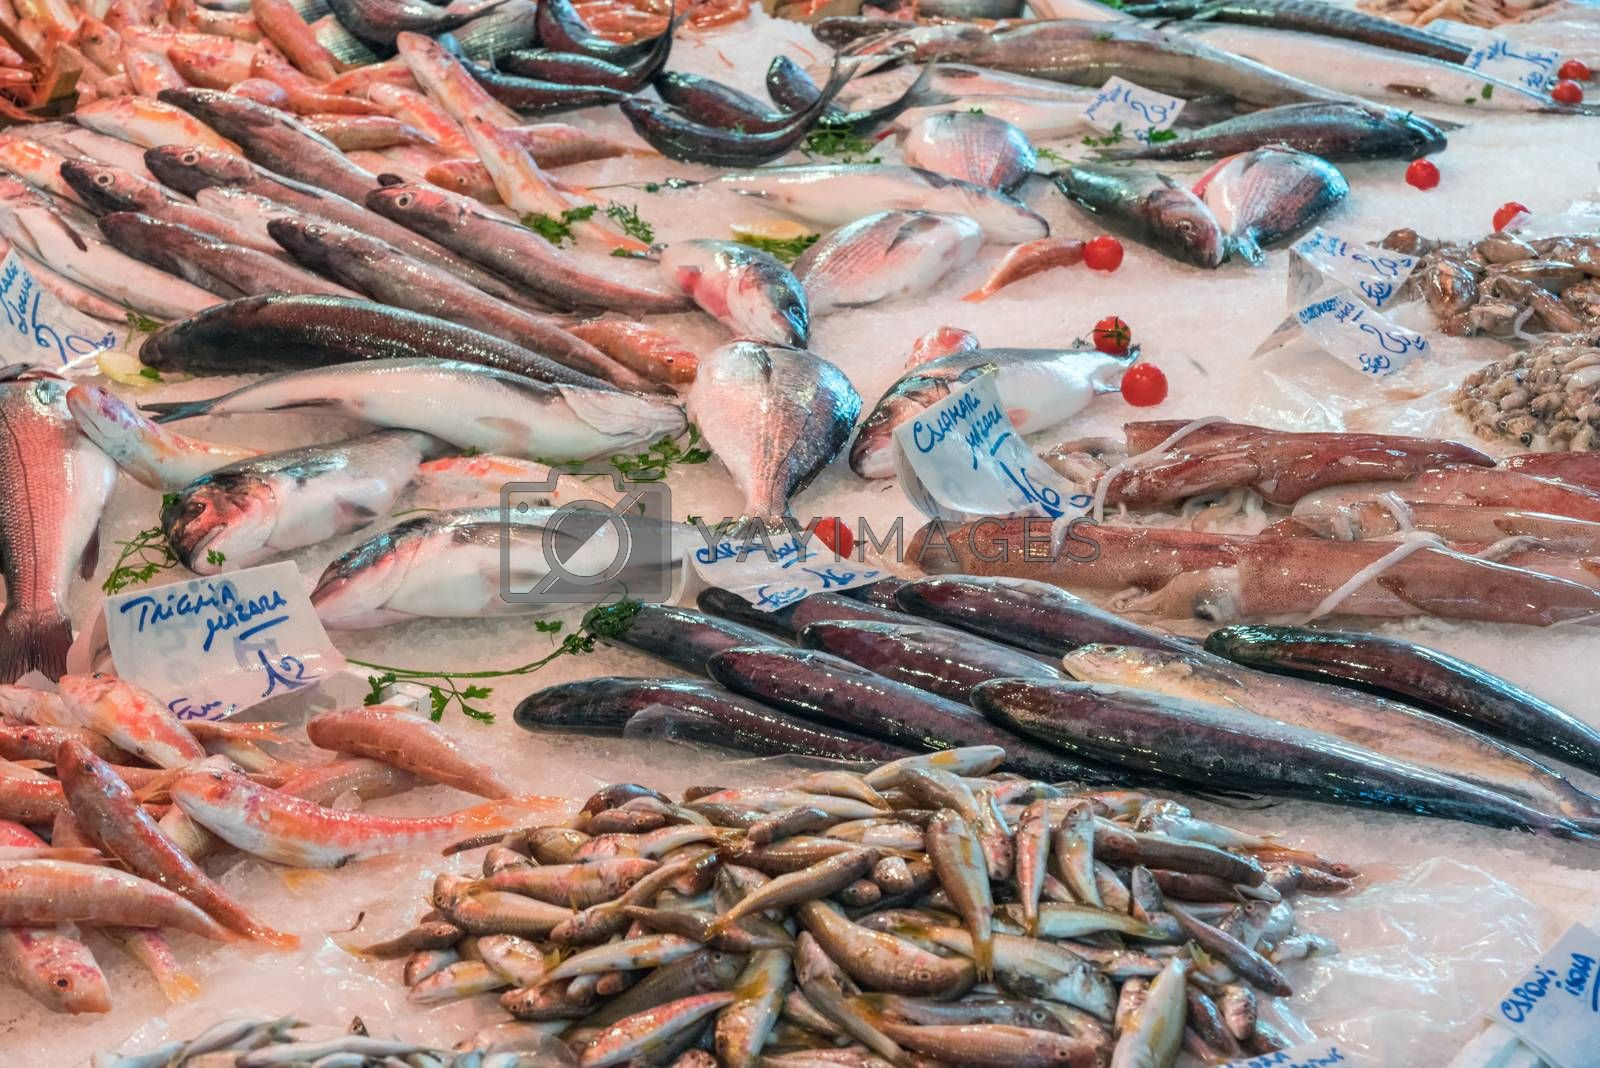 Fresh fish and seafood seen at a market in Palermo, Sicily